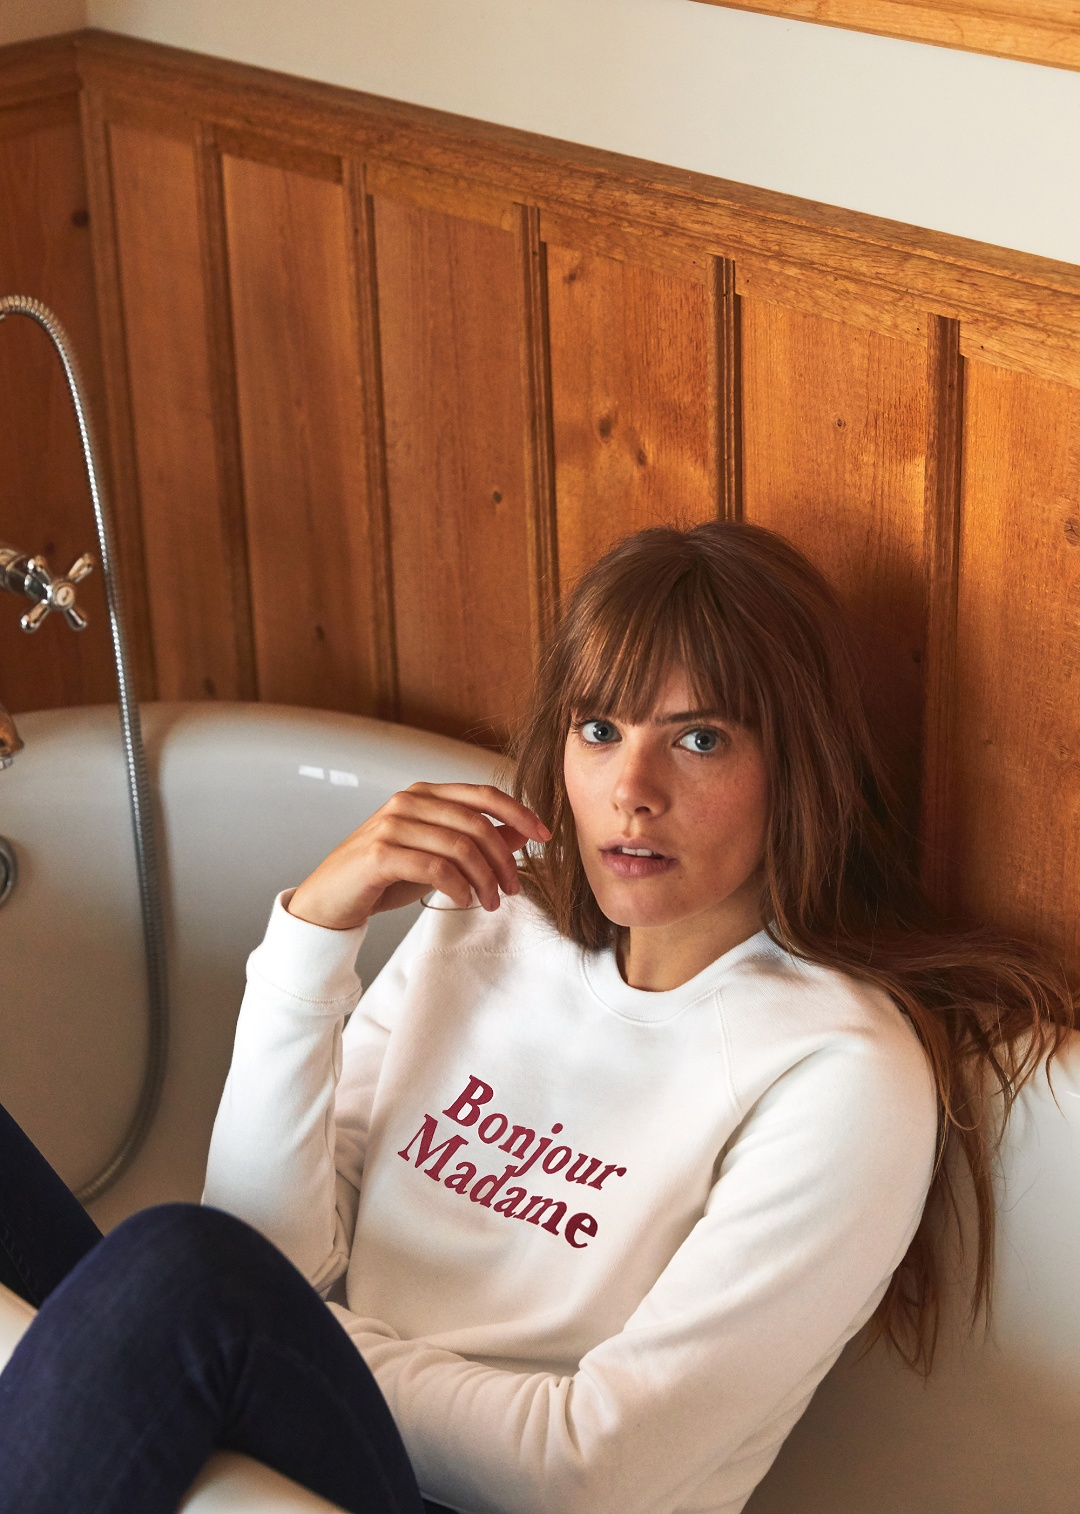 Blog-Mode-And-The-City-Lifestyle-Cinq-Petites-Choses-247-sweat-bonjour-madame-sezane